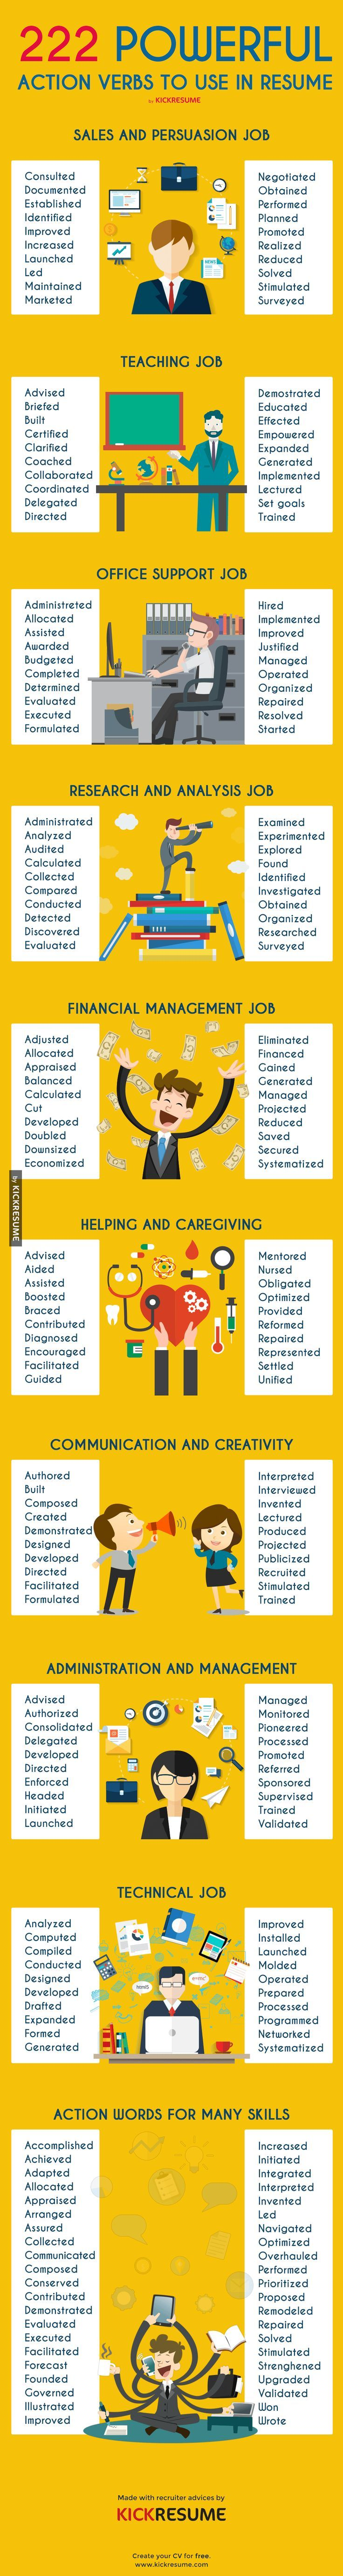 Grant Writing Resume 200 Powerful Action Verbs Perfect For Your Resume Infographic .